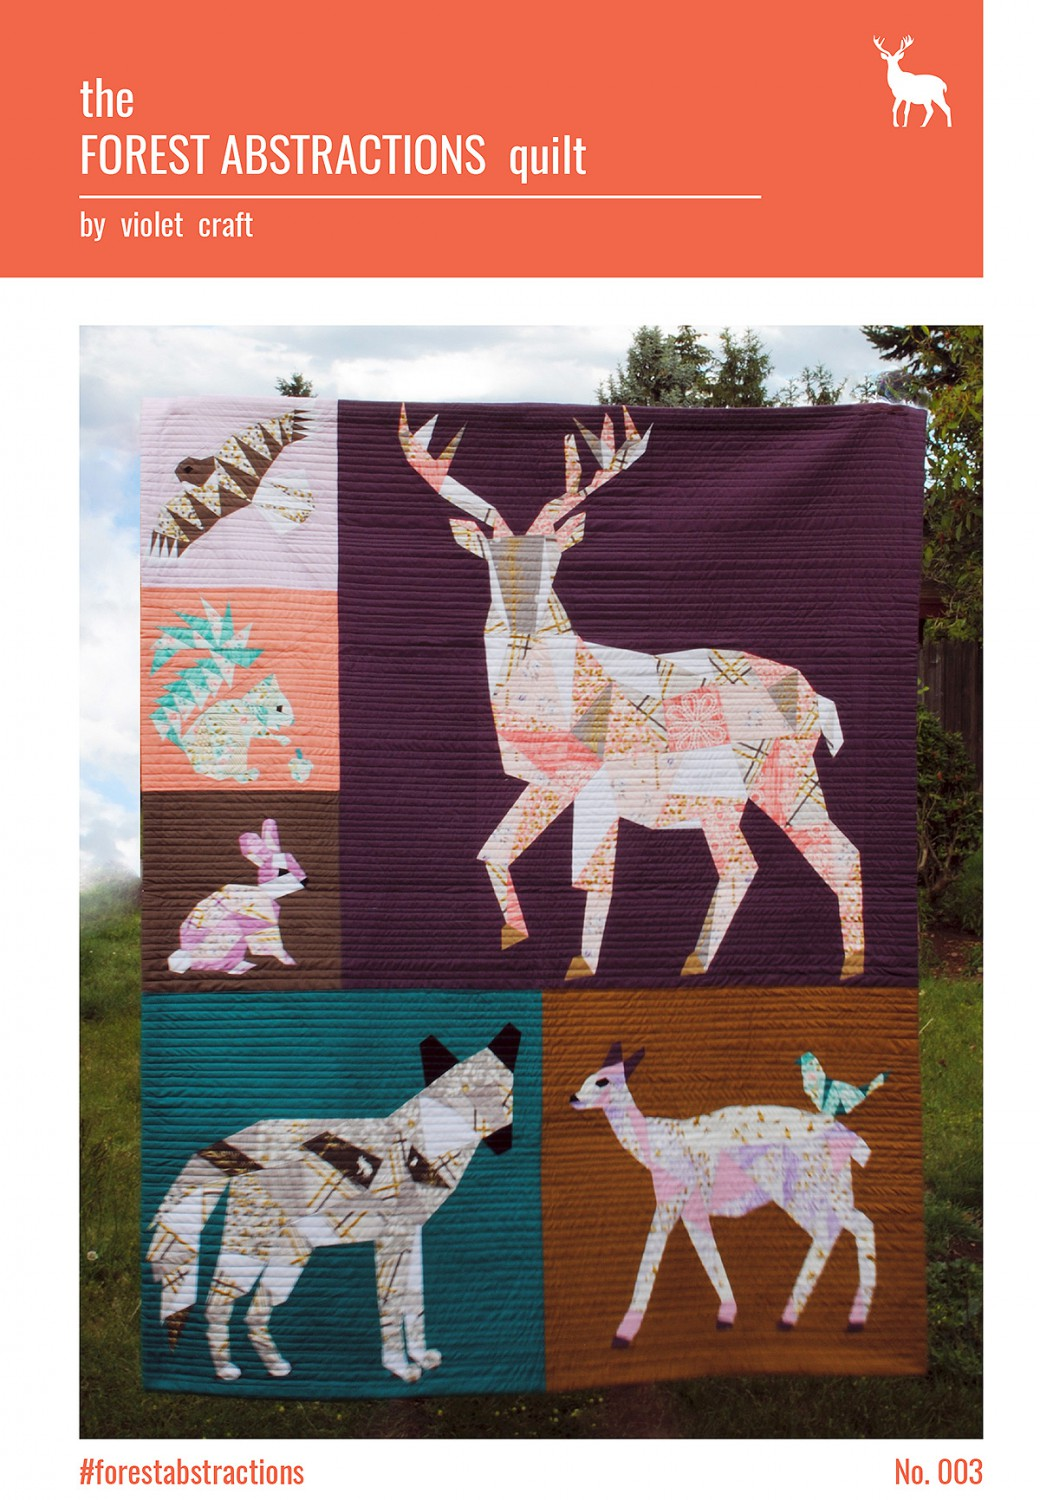 Quiltzauberei.de | The Forest Abstractions Quilt - The Jungle ...